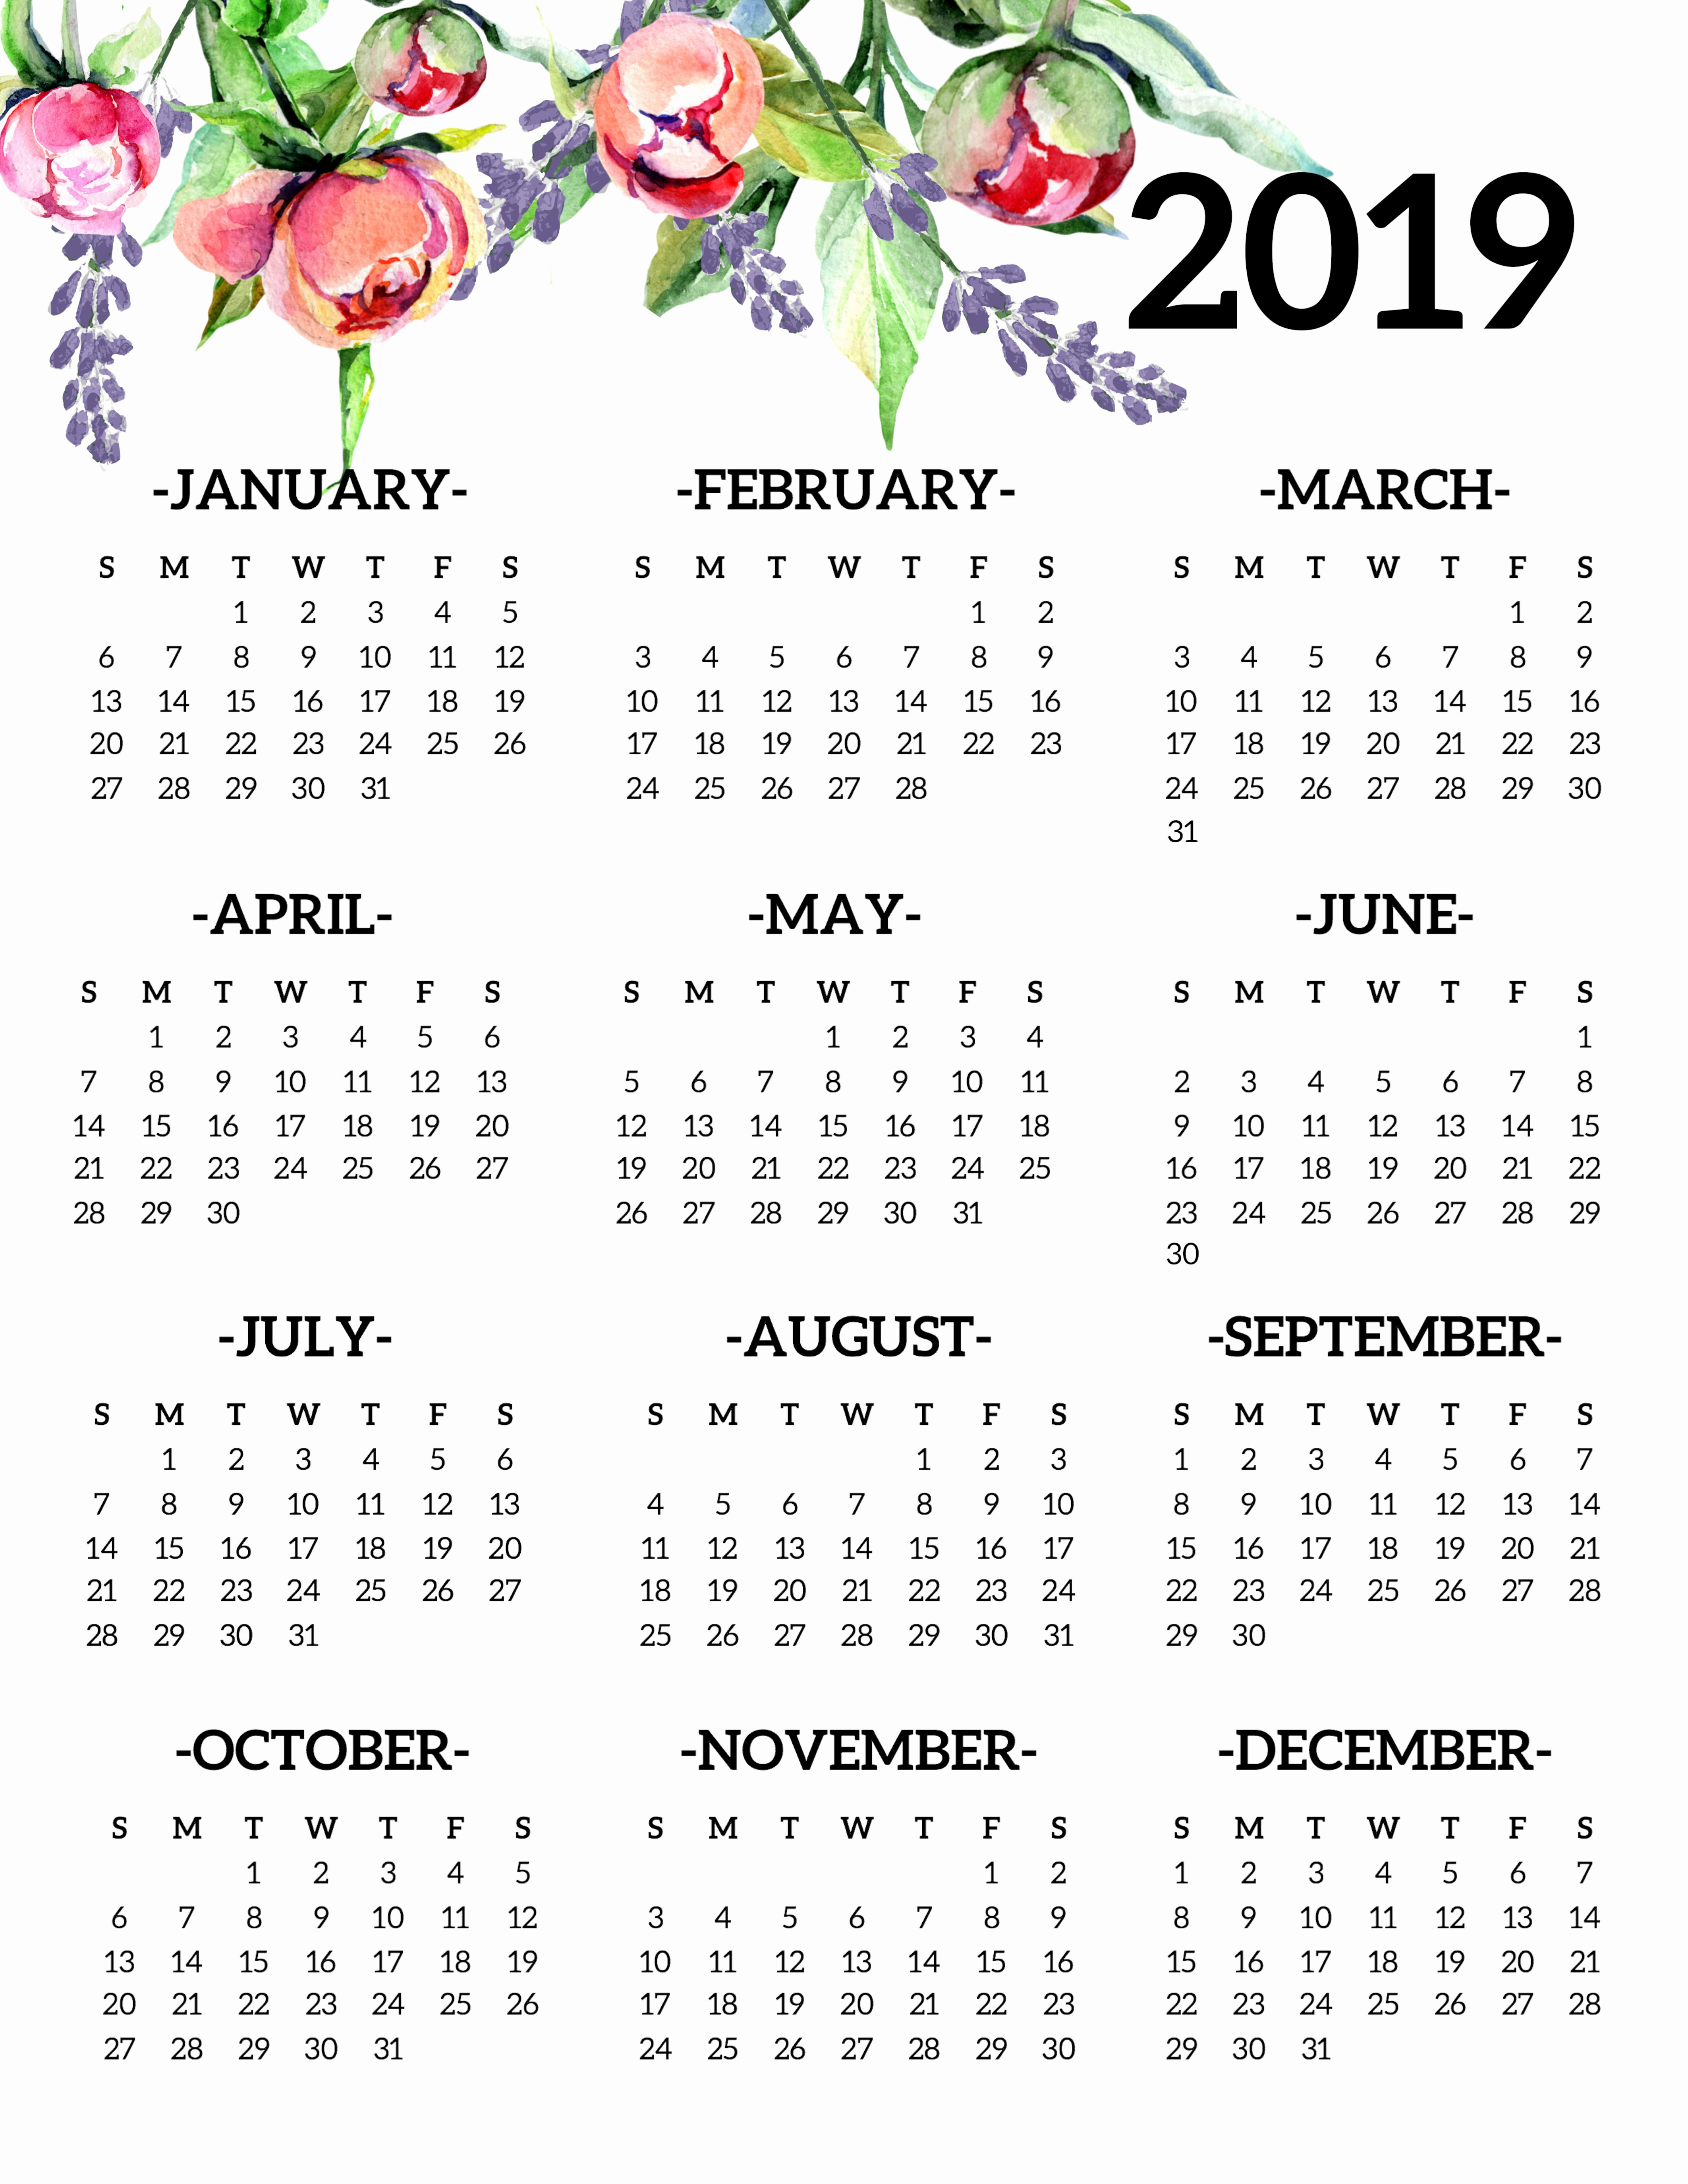 2019 Yearly Calendar One Page Elegant Free Printable 2019 Calendar Yearly E Page Floral